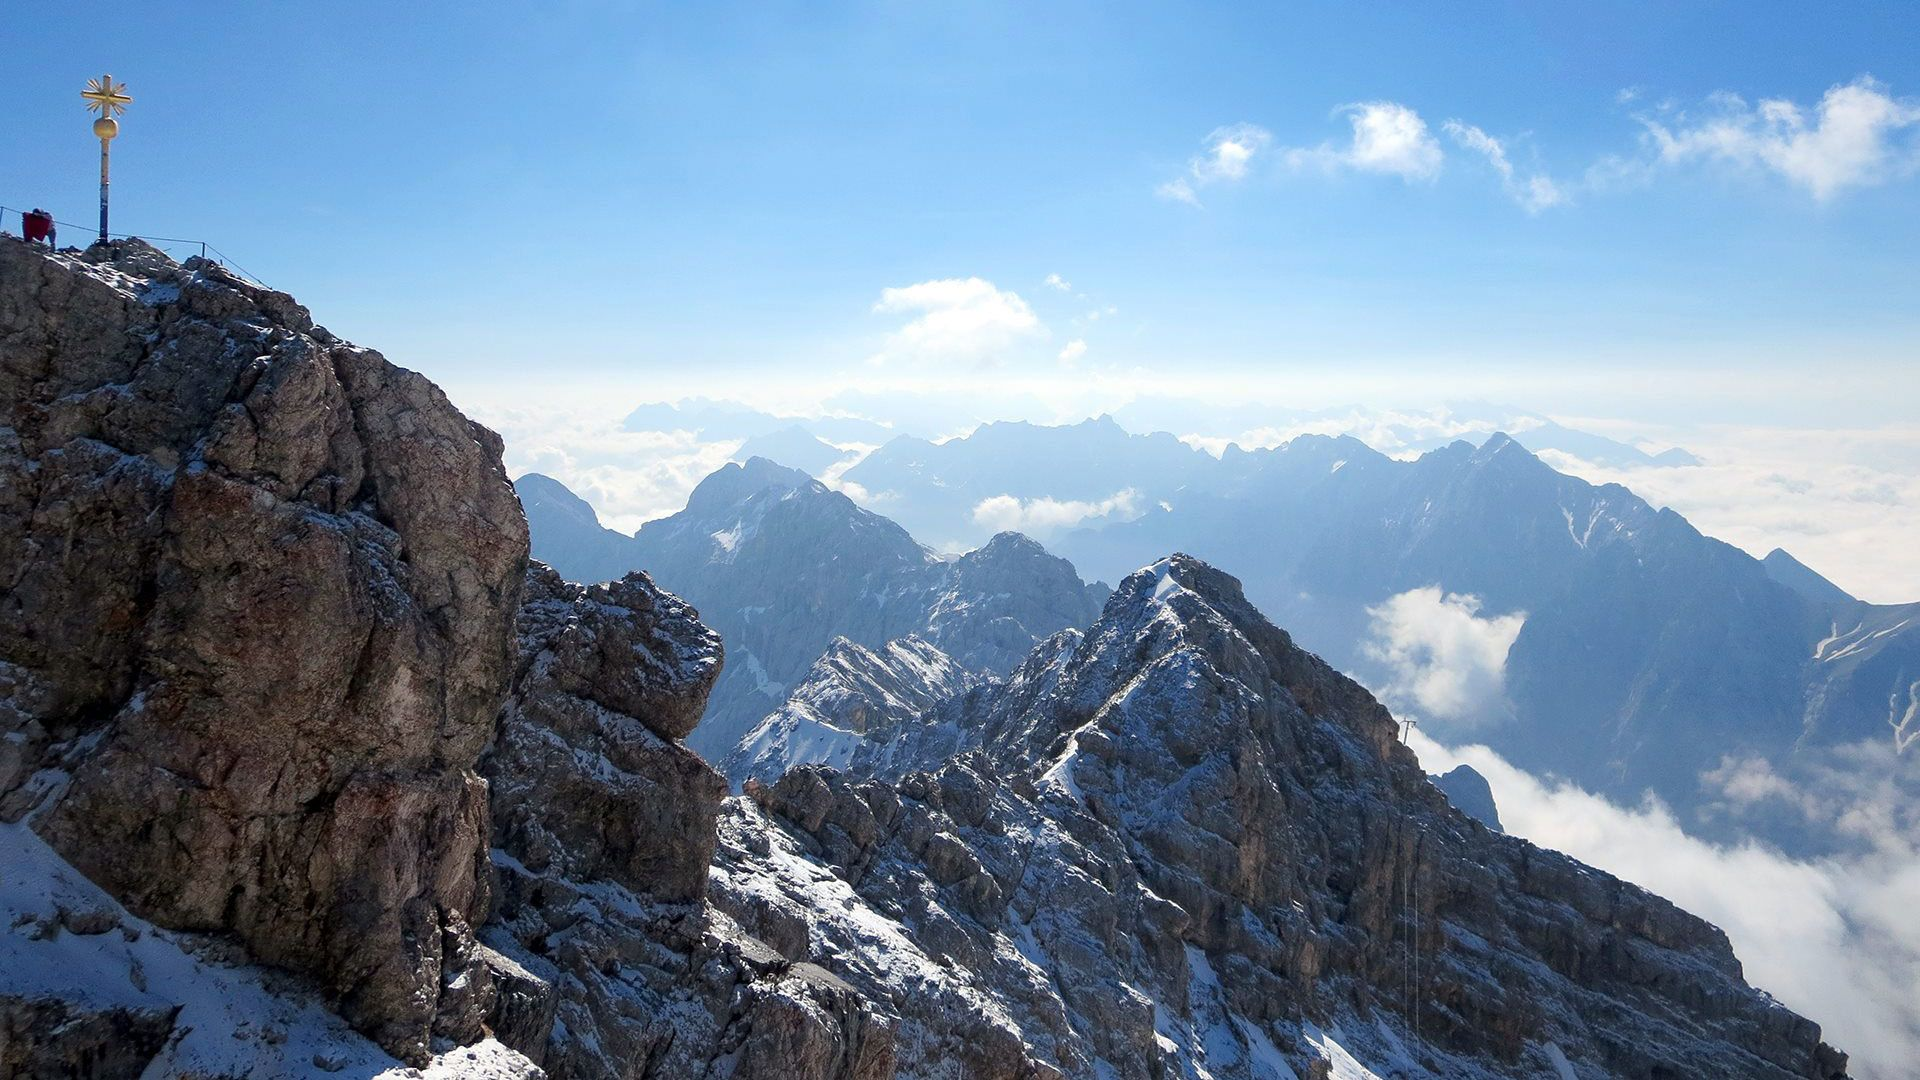 Summit of the Alps